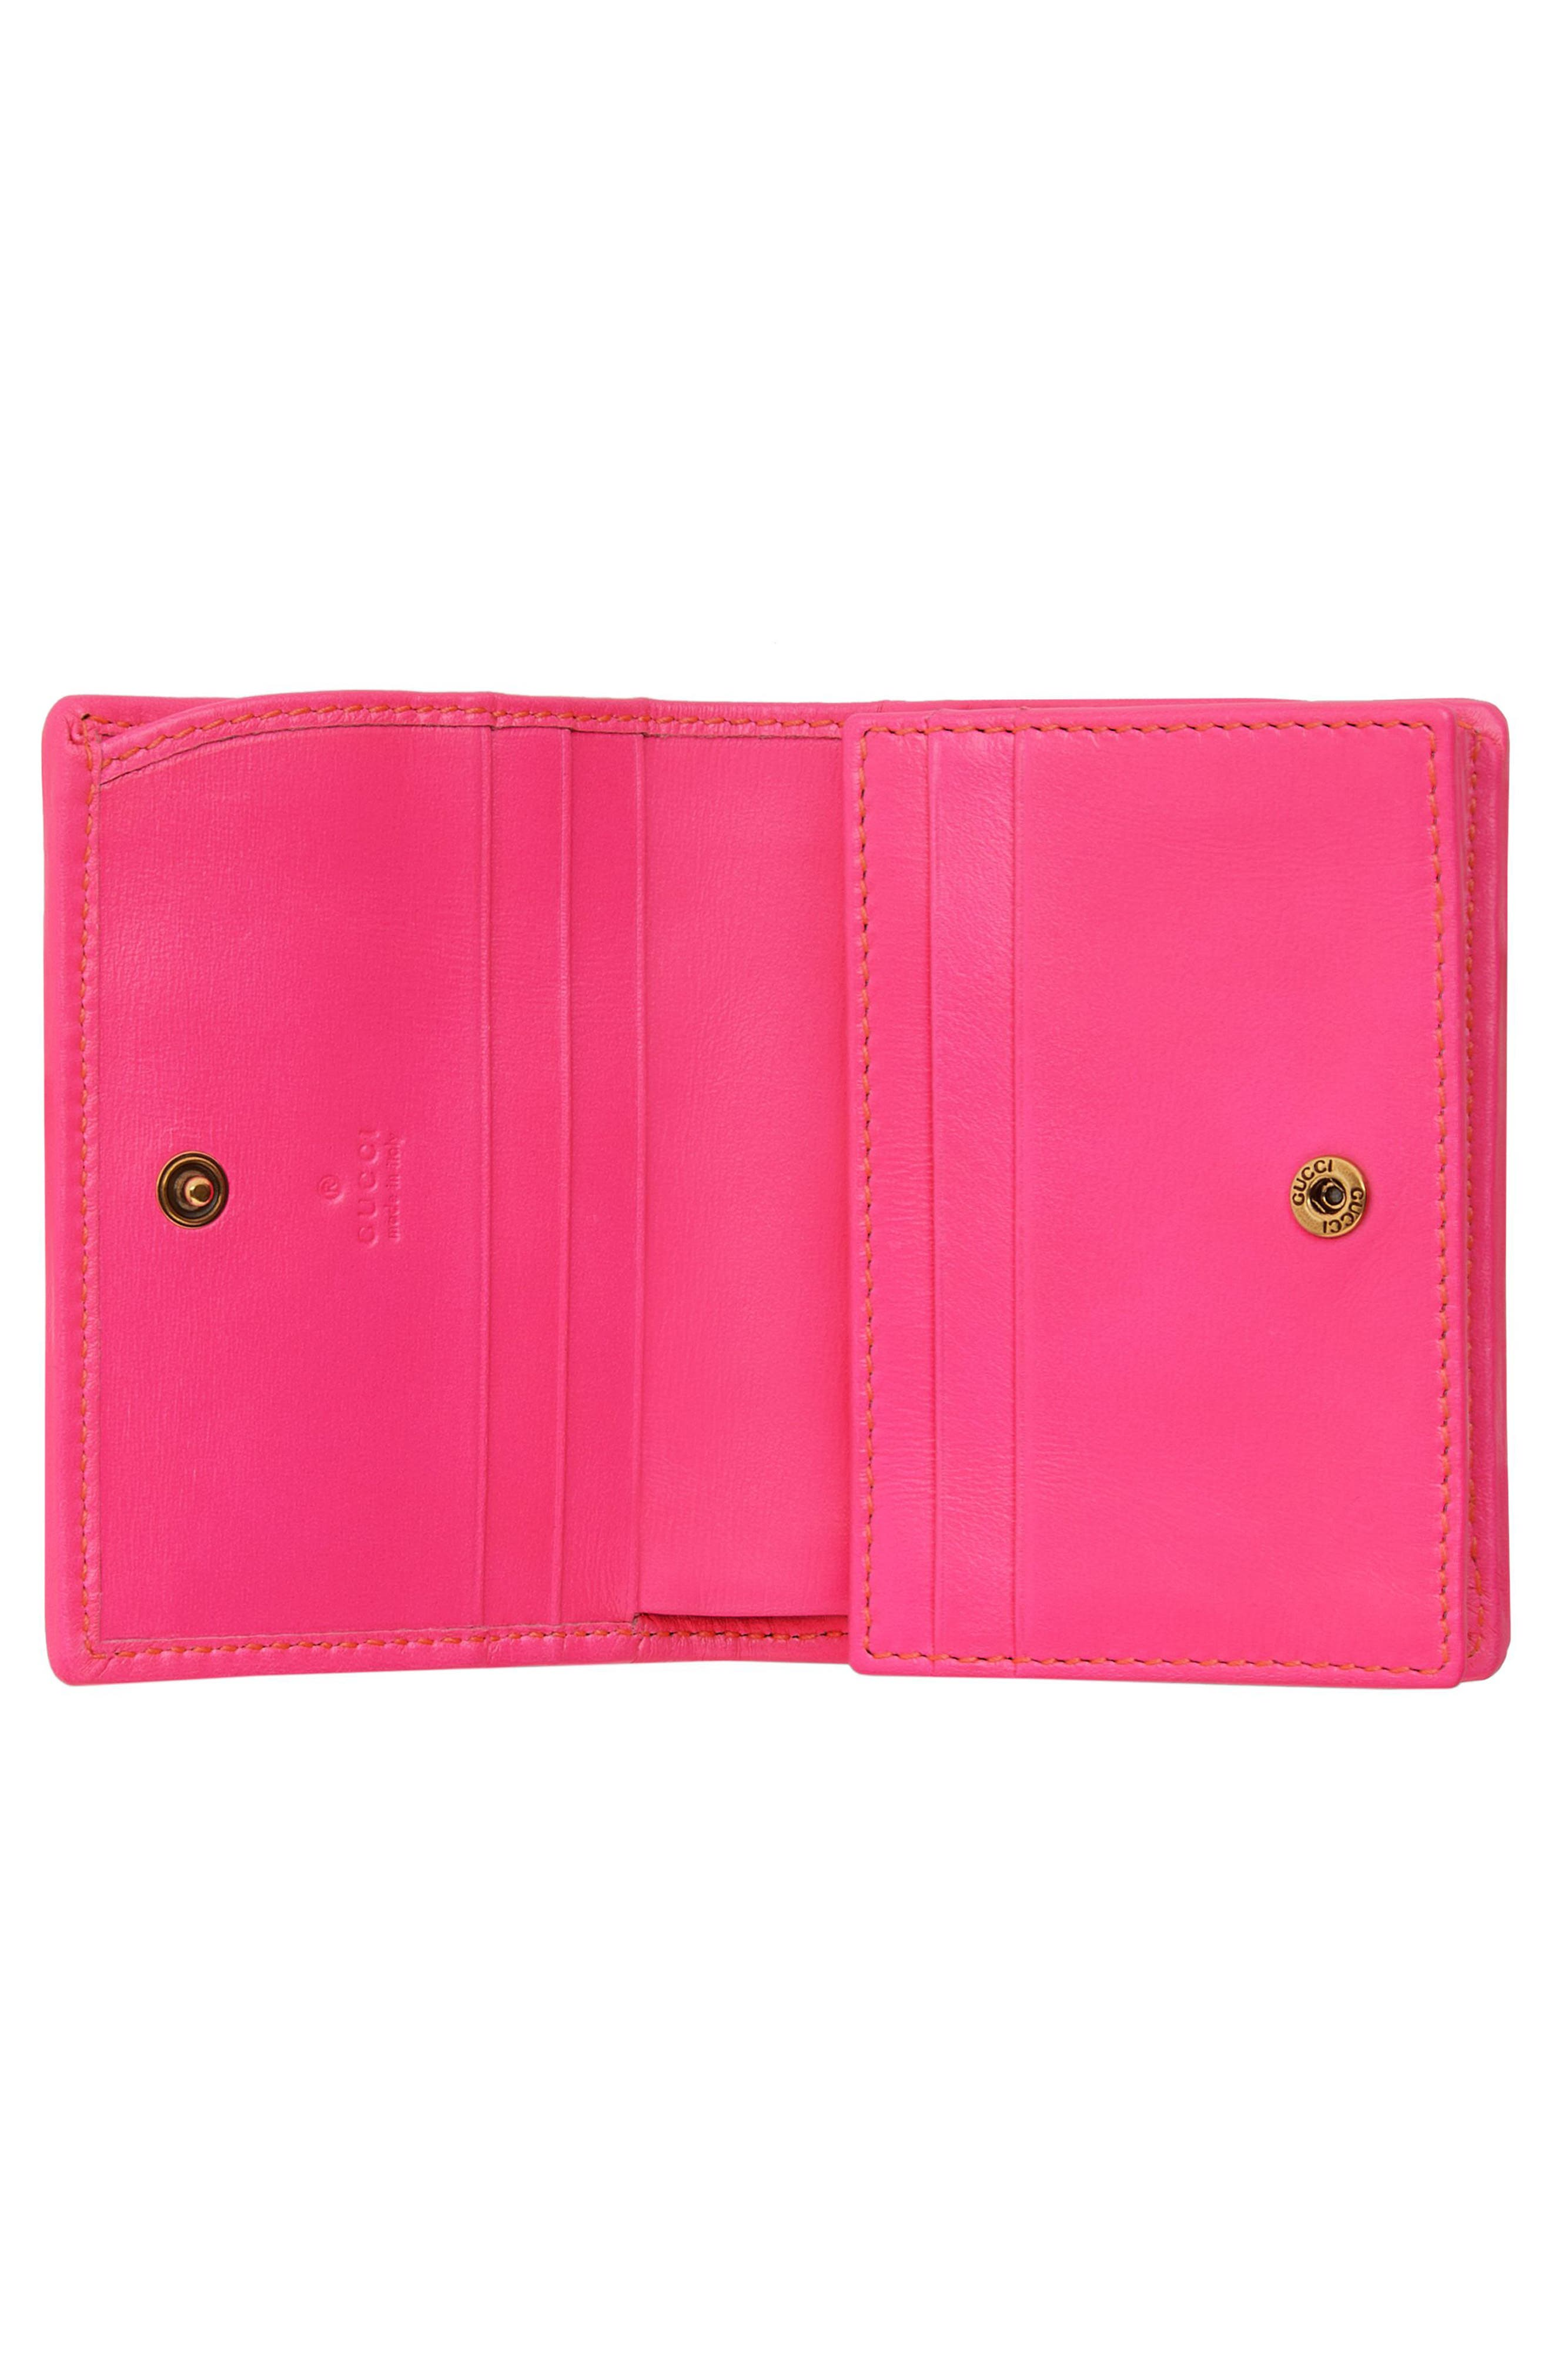 Quilted Leather Card Case,                             Alternate thumbnail 2, color,                             670